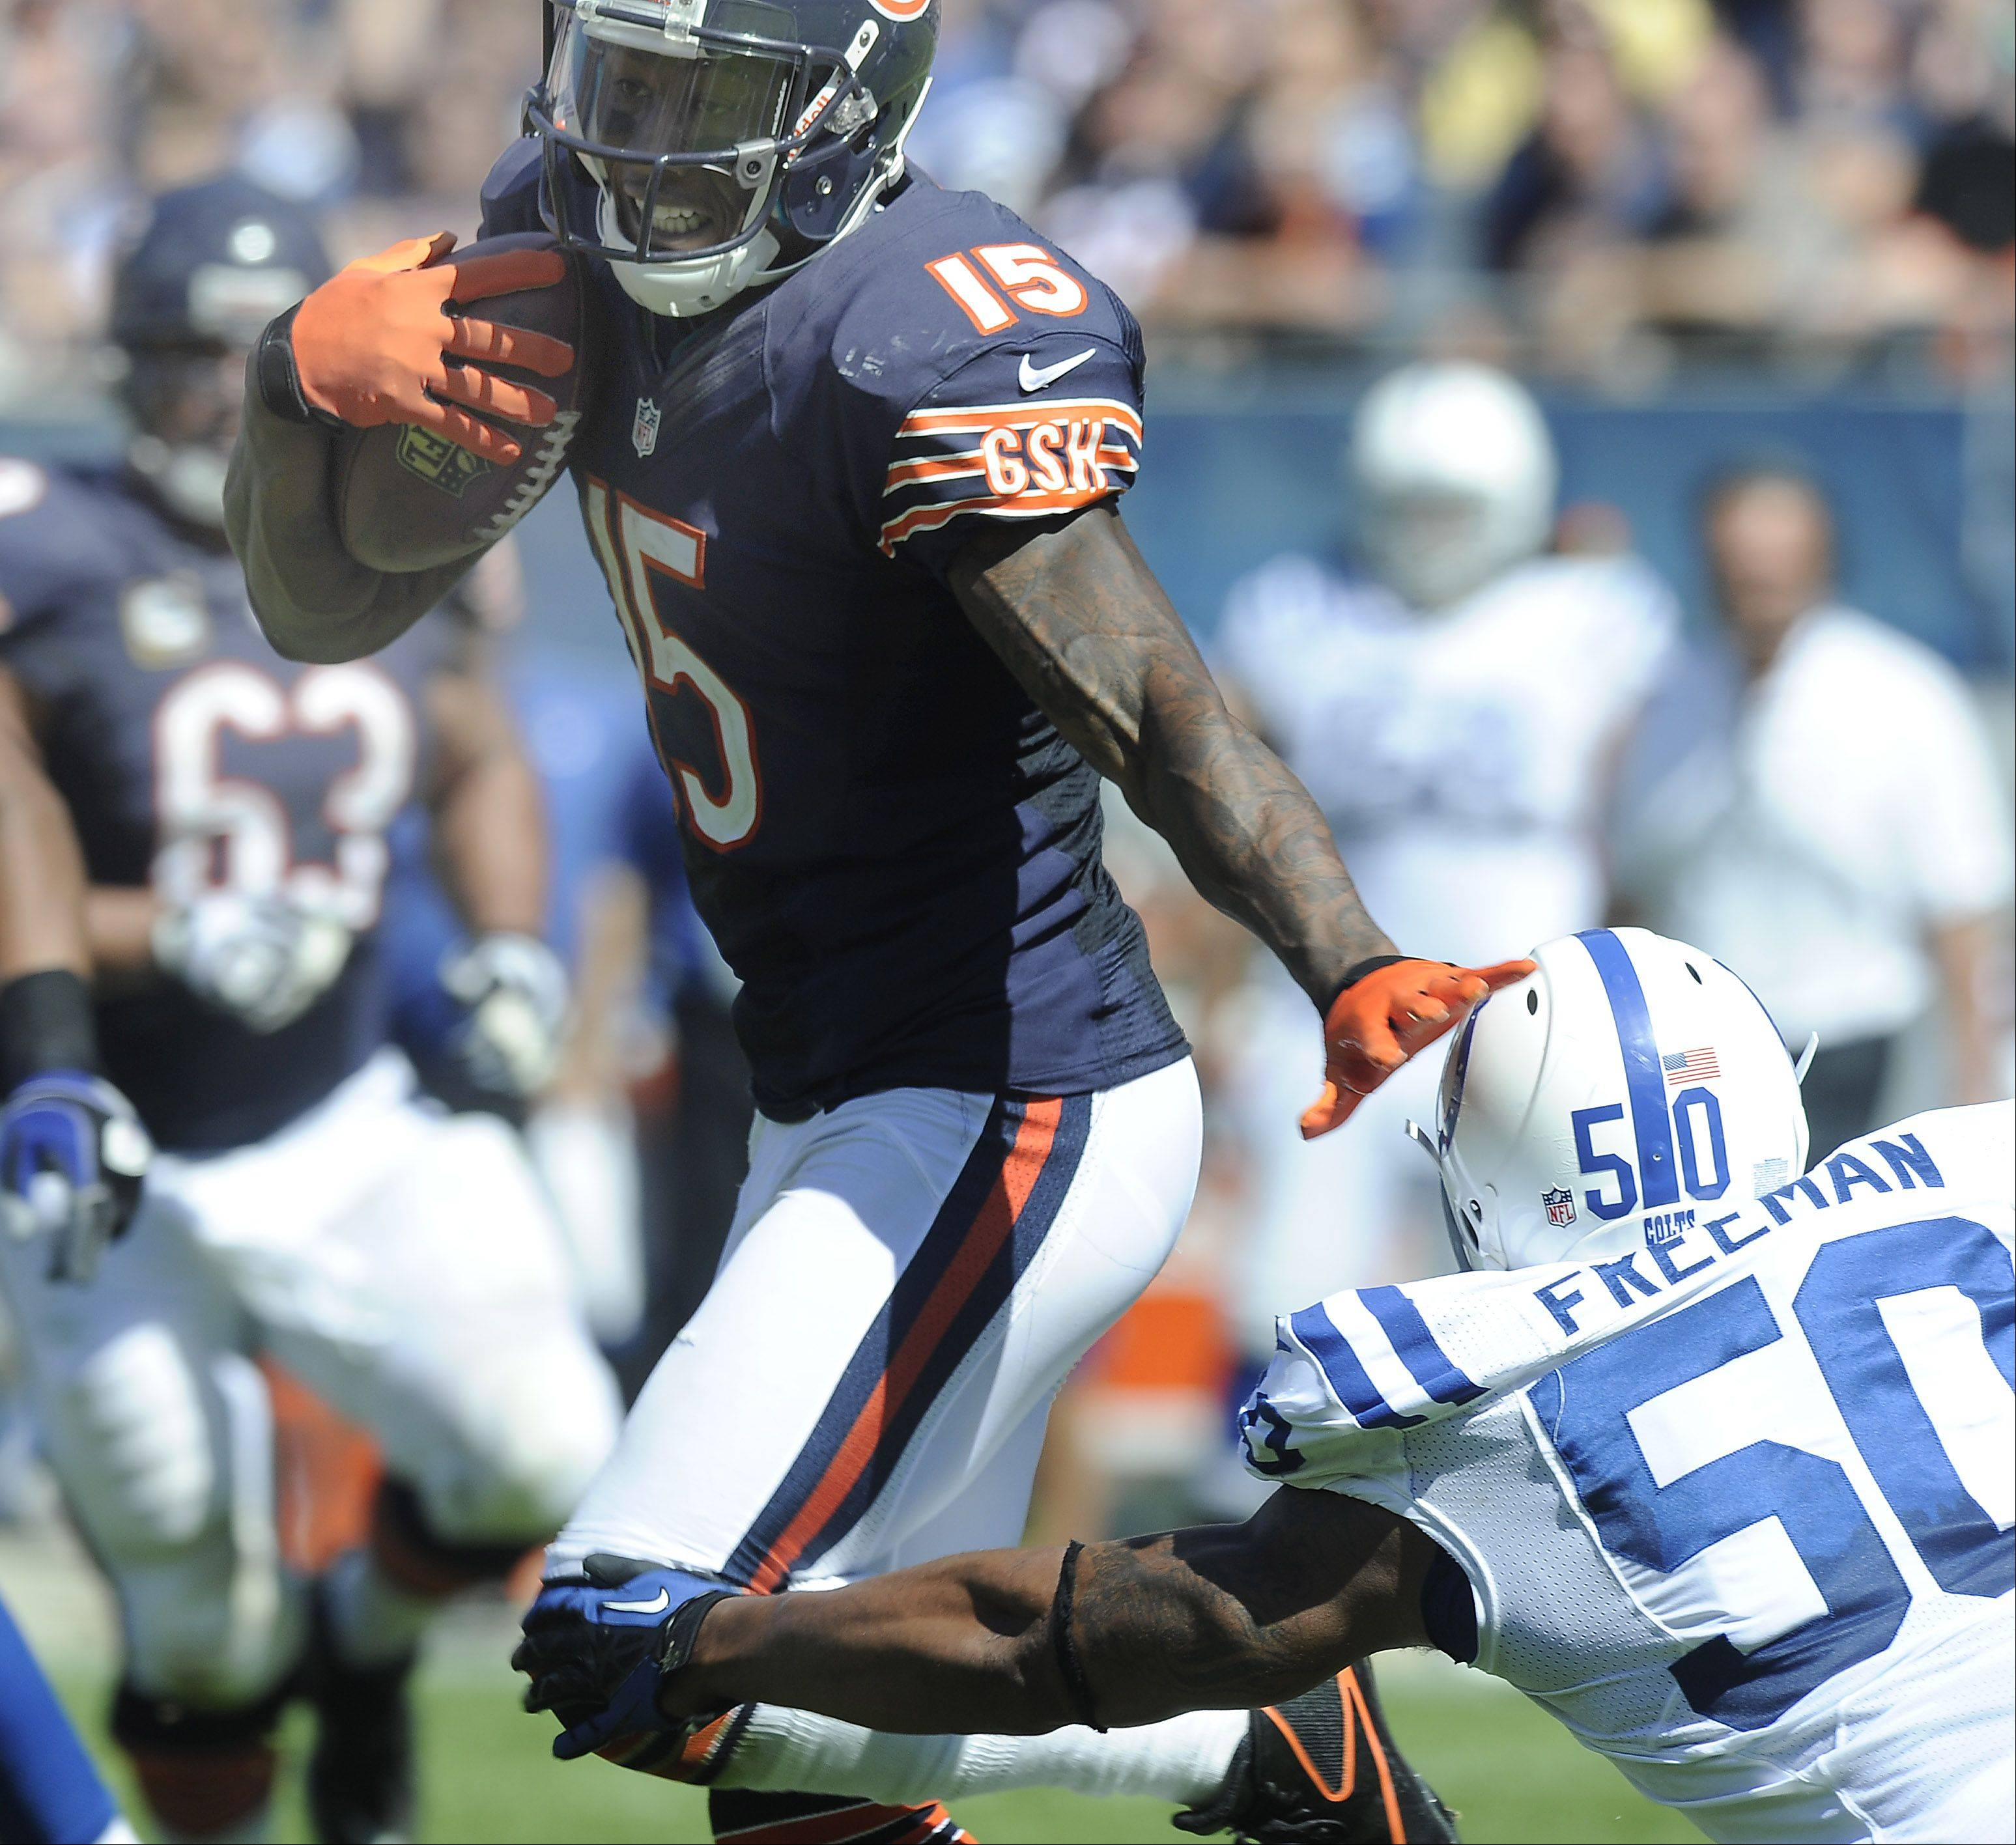 Bears wide receiver Brandon Marshall runs around Colts defender Jerrell Freeman on his way to 115 yards on 9 catches with a touchdown in Sunday's season-opening victory.